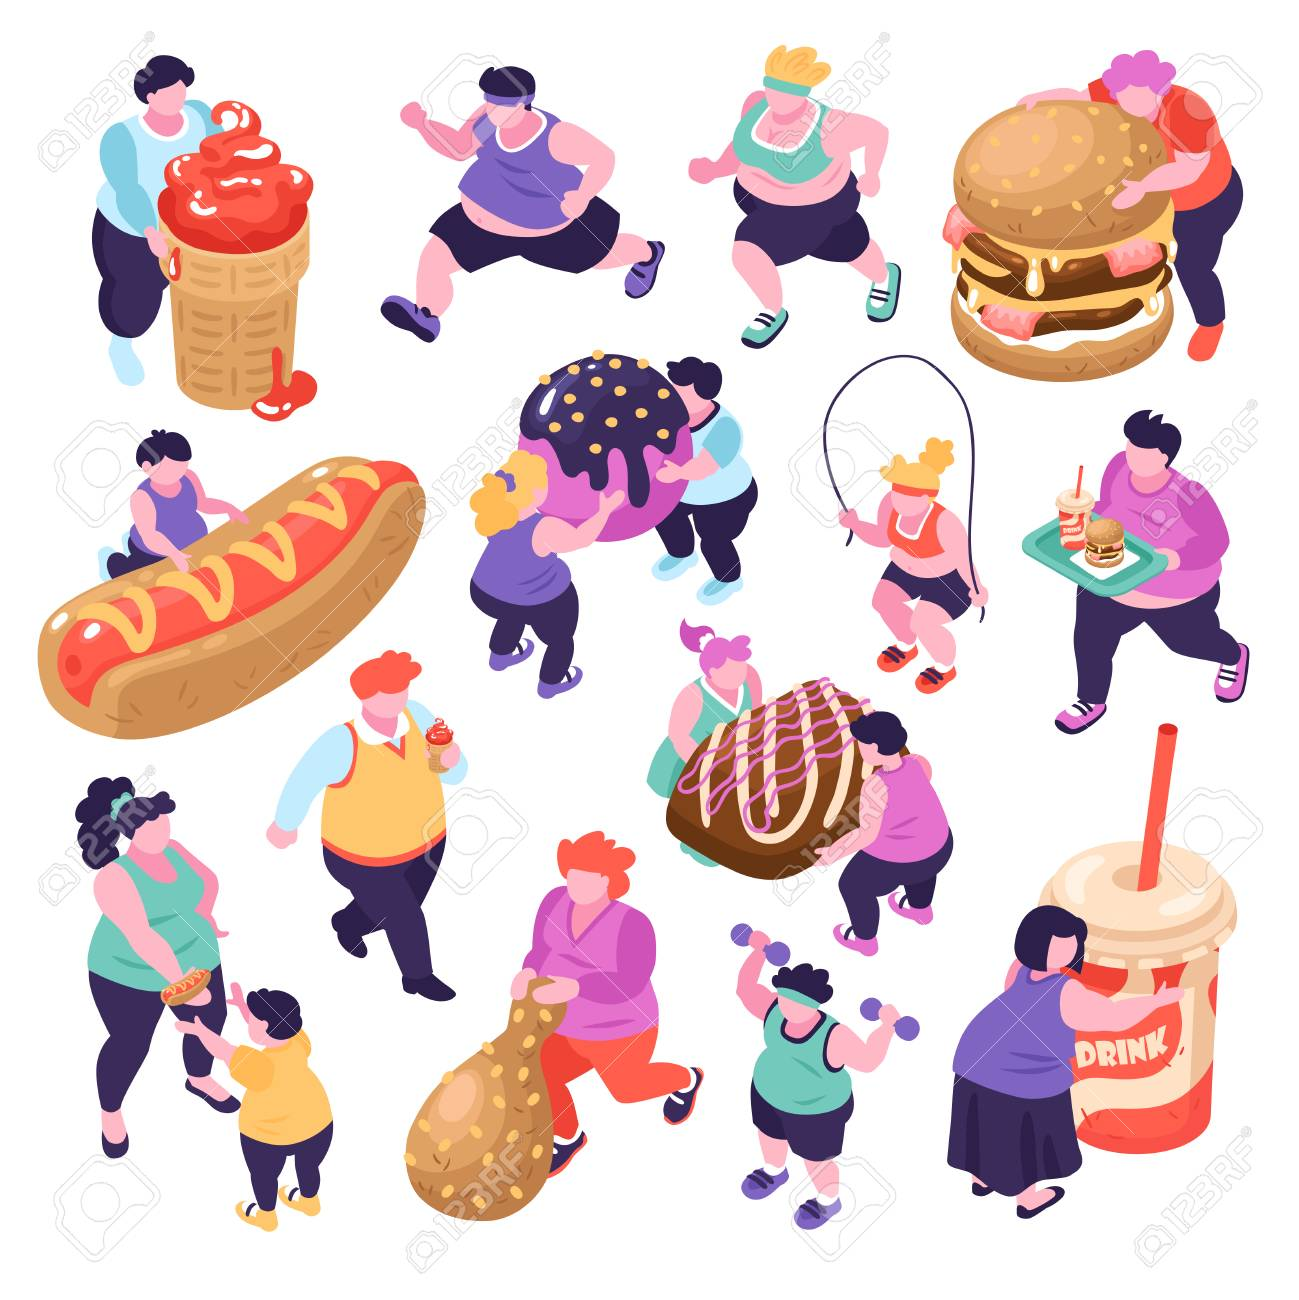 Men and women suffering from gluttony and doing sports isometric icons set isolated on white background 3d vector illustration - 124733516